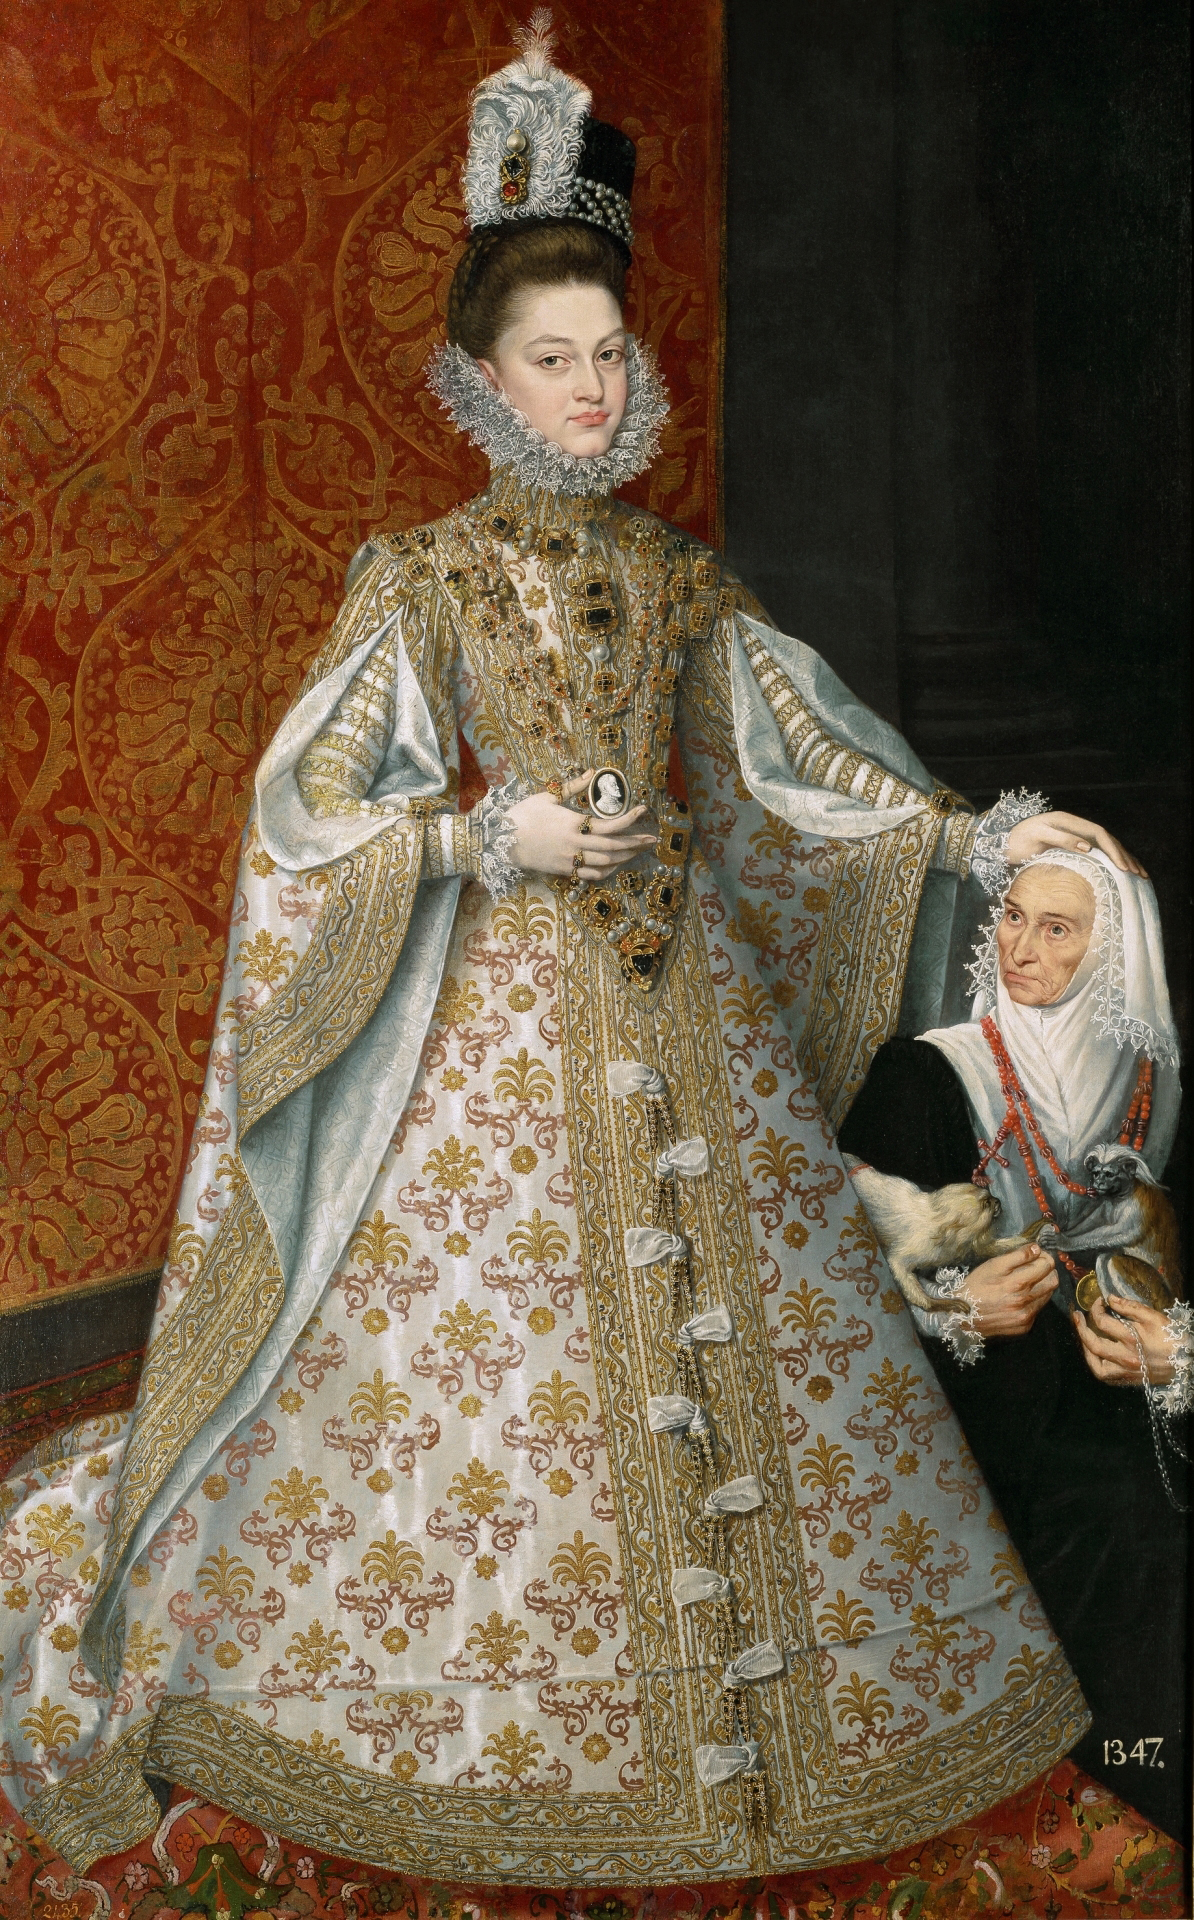 La Infanta Isabel Clara Eugenia y Magdalena Ruiz, oil on canvas, Alonso Sancho Coello, 1585-88 (Image courtesy of the Prado Museum)